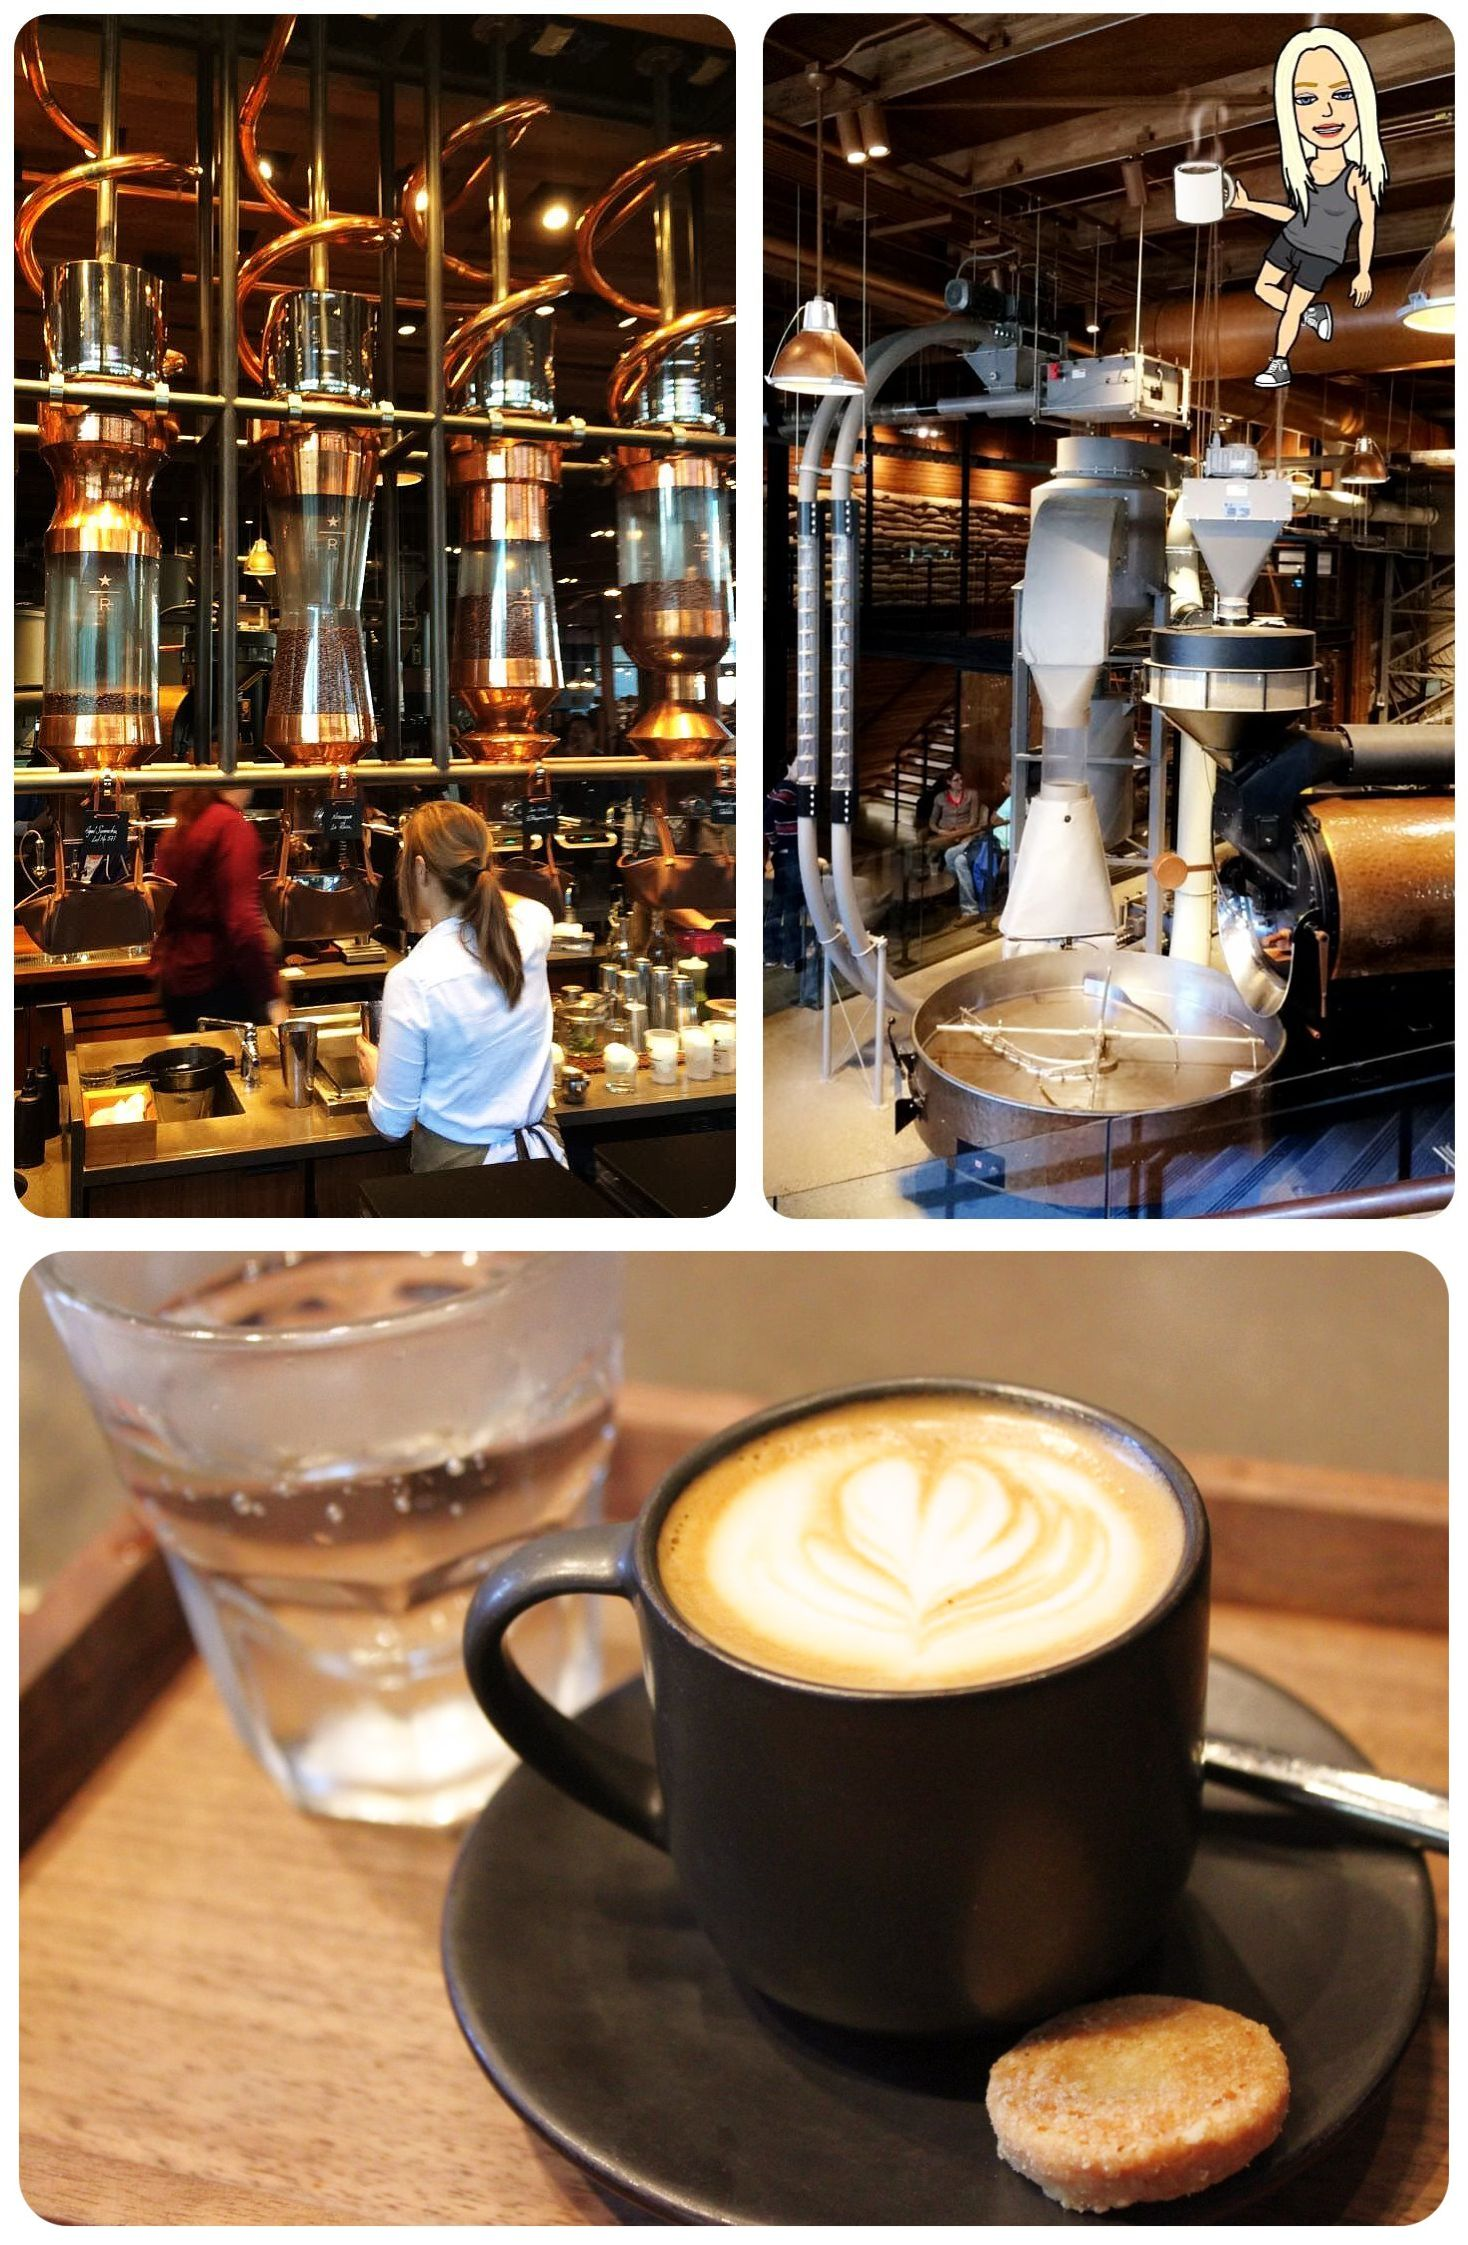 Seattle Starbucks Reserve & Roasting Room